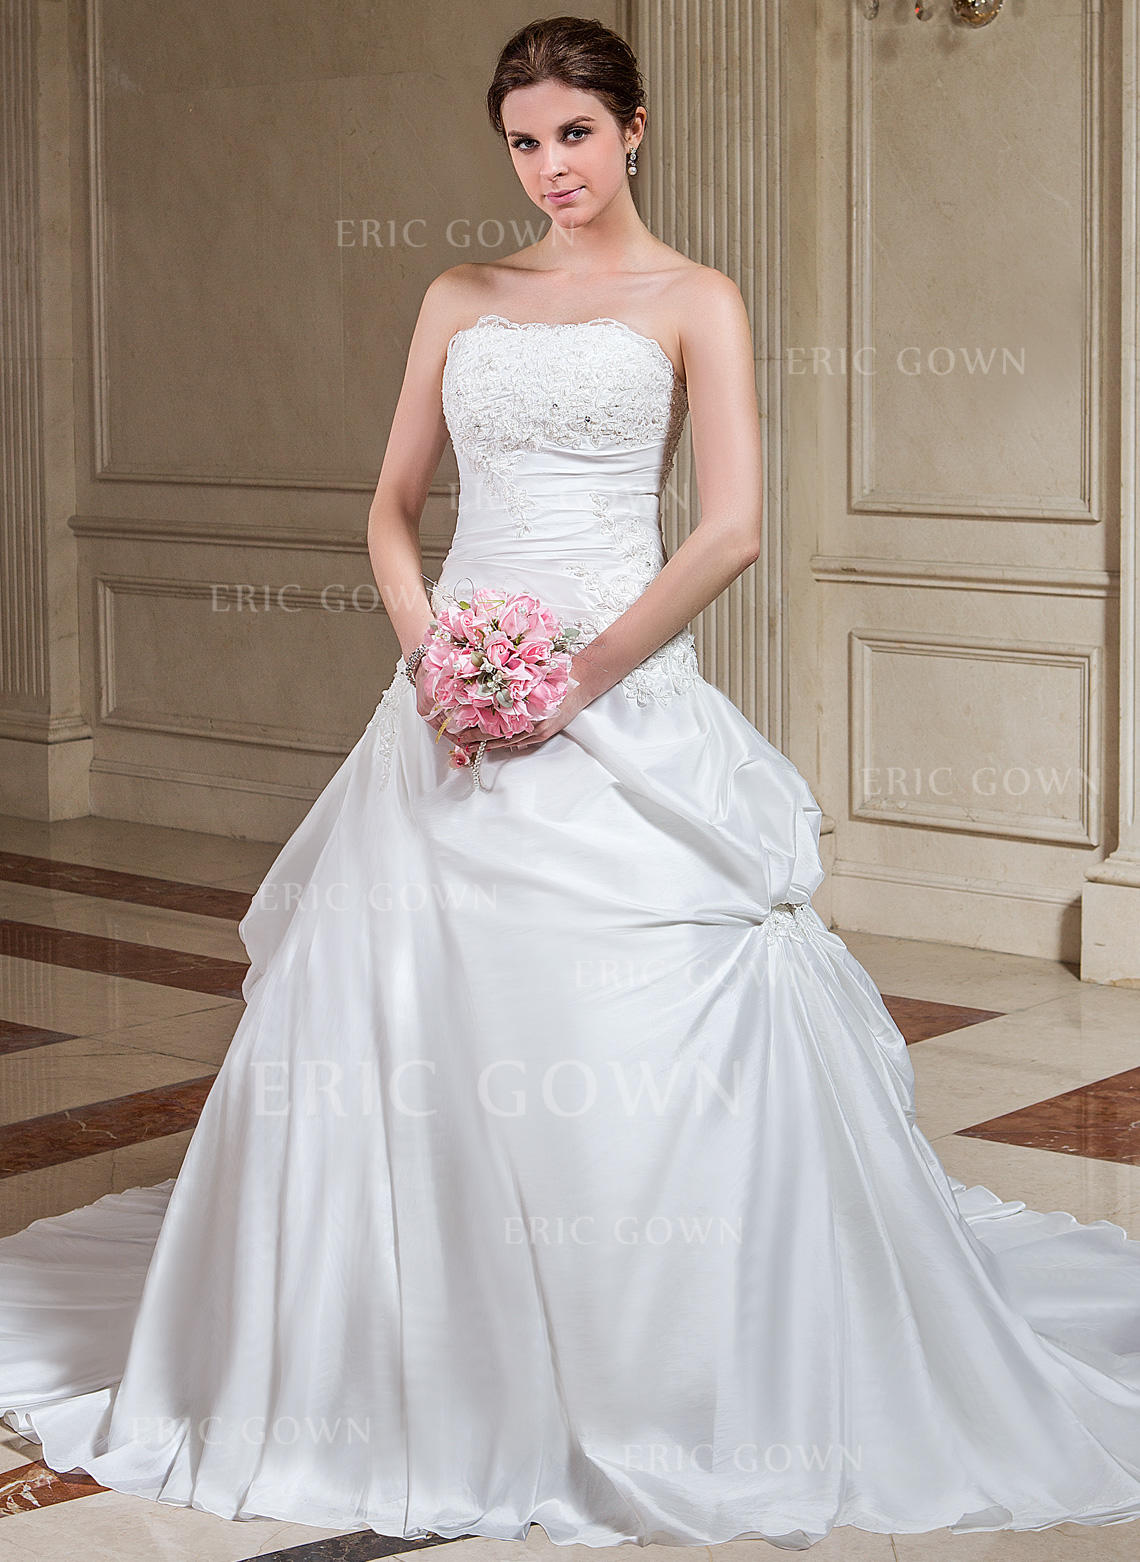 7c43904a926 Sexy Strapless A-Line Princess Wedding Dresses Court Train Taffeta  Sleeveless (002196860). Loading zoom